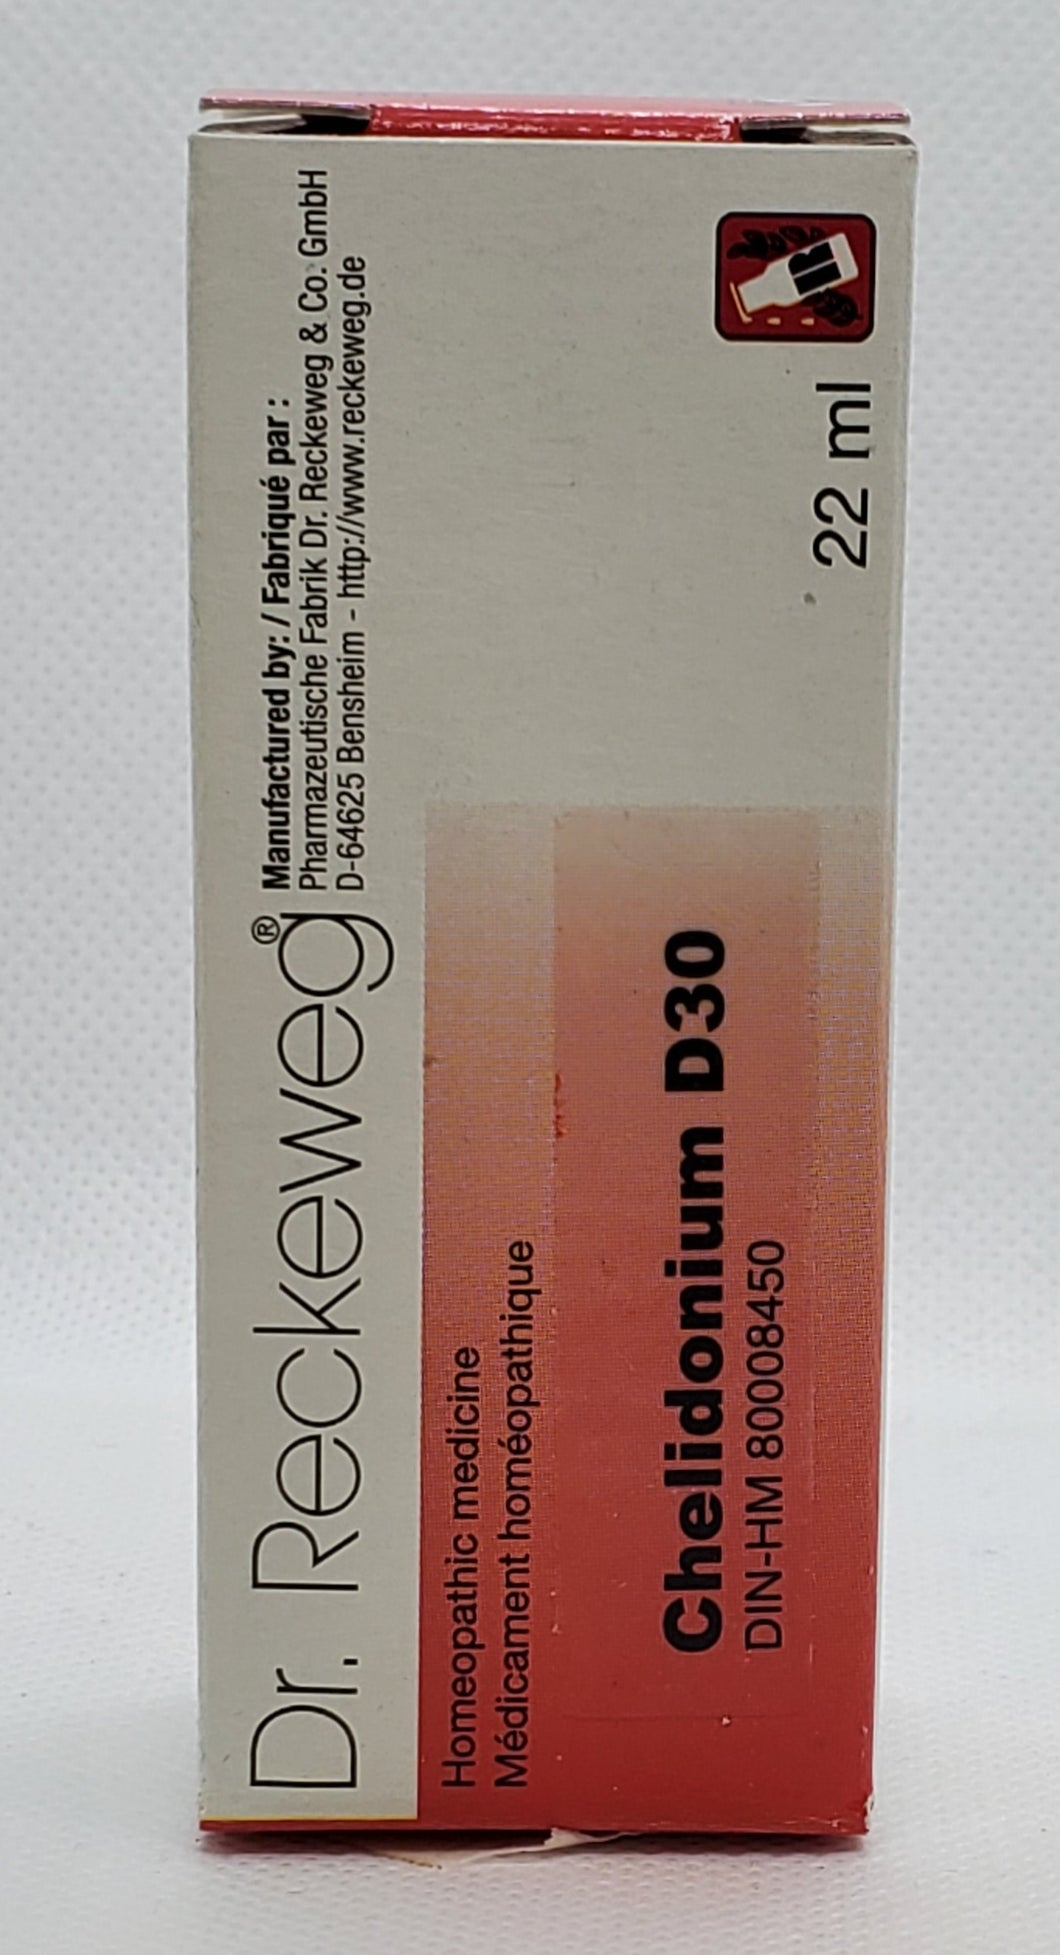 Chelidonium D30 - Dr. Kohli's Herbal Products